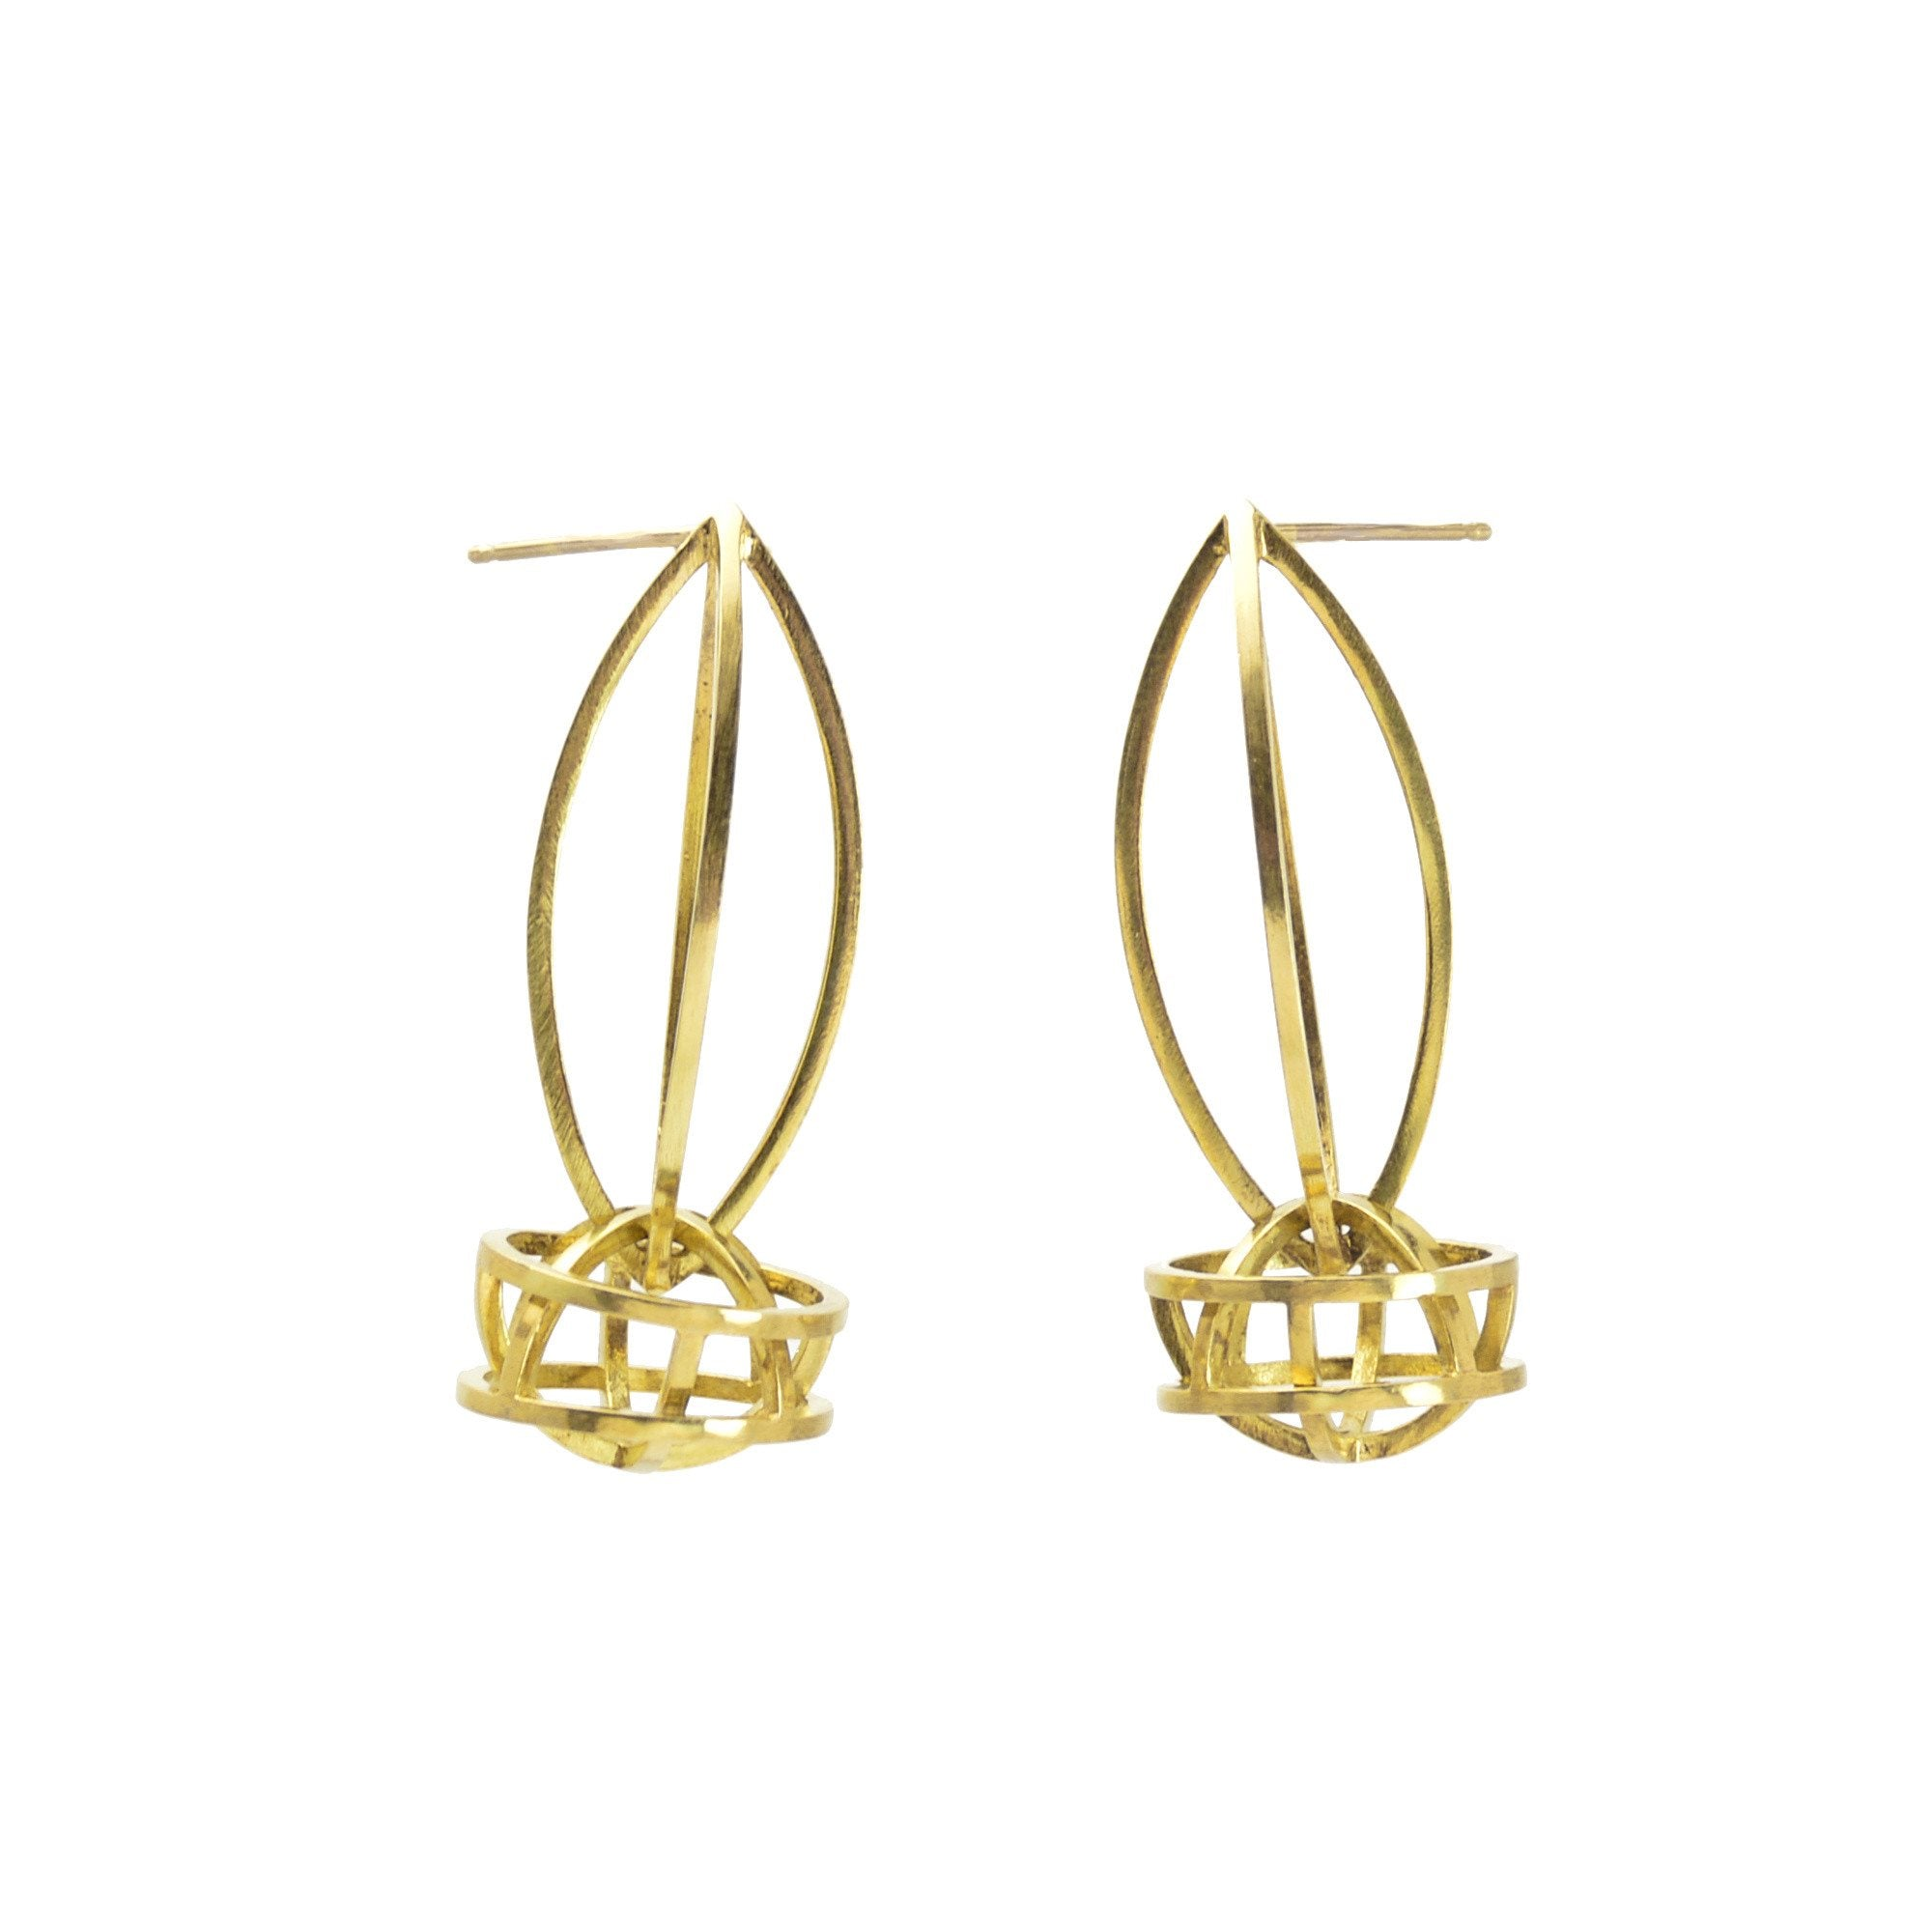 Lattis Link Earrings in 18k Royal Gold